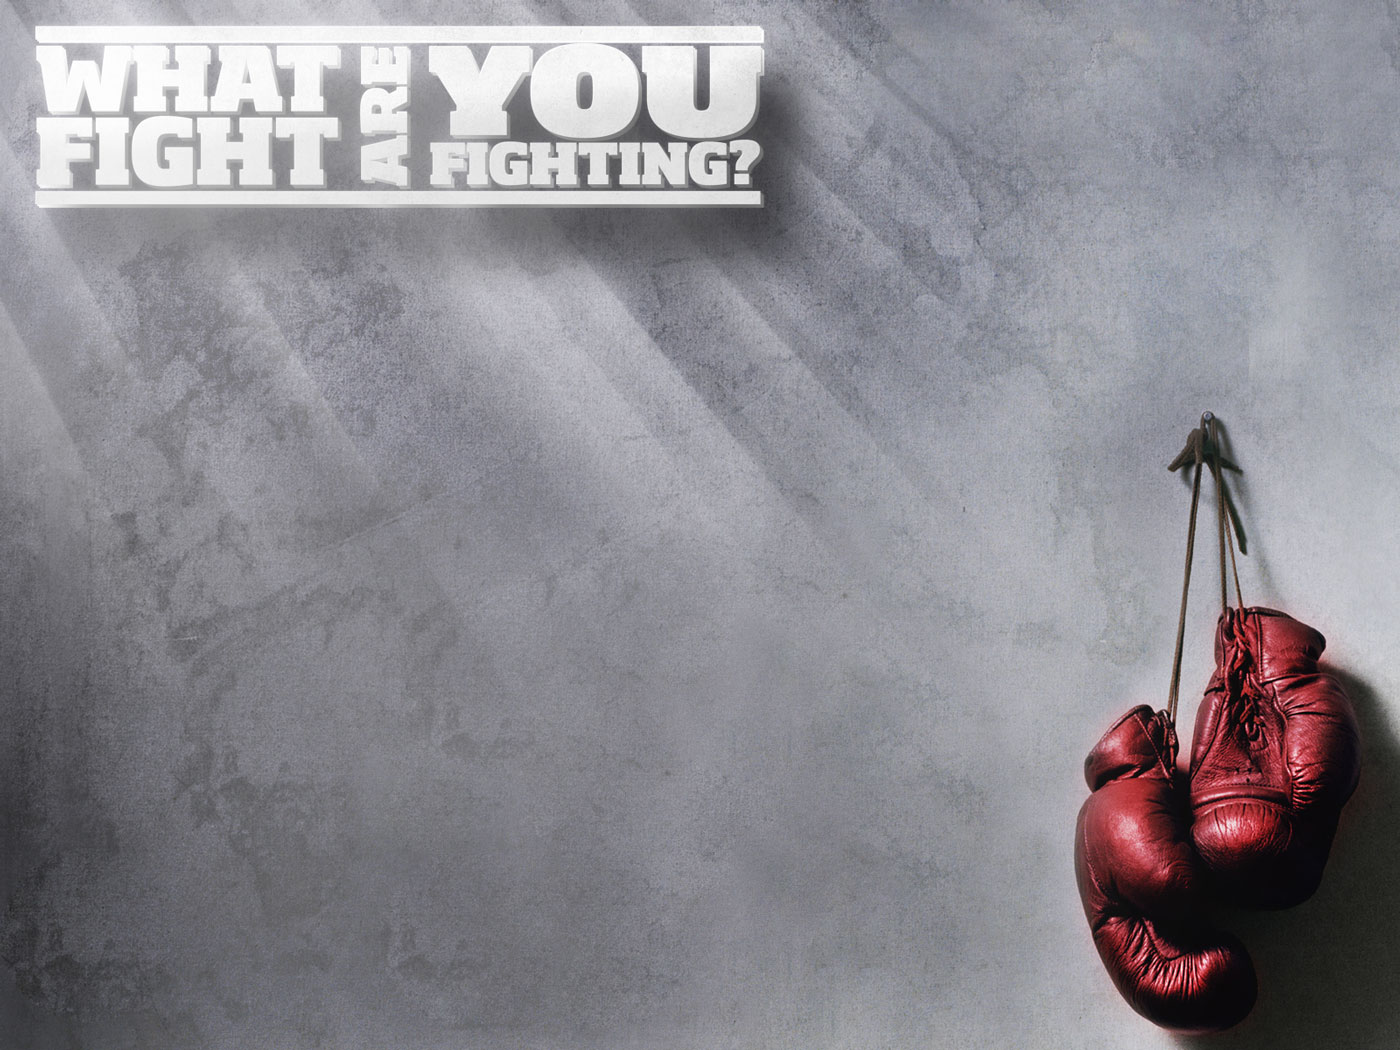 WhatFightAreYouFighting_BG_Fullres_Web